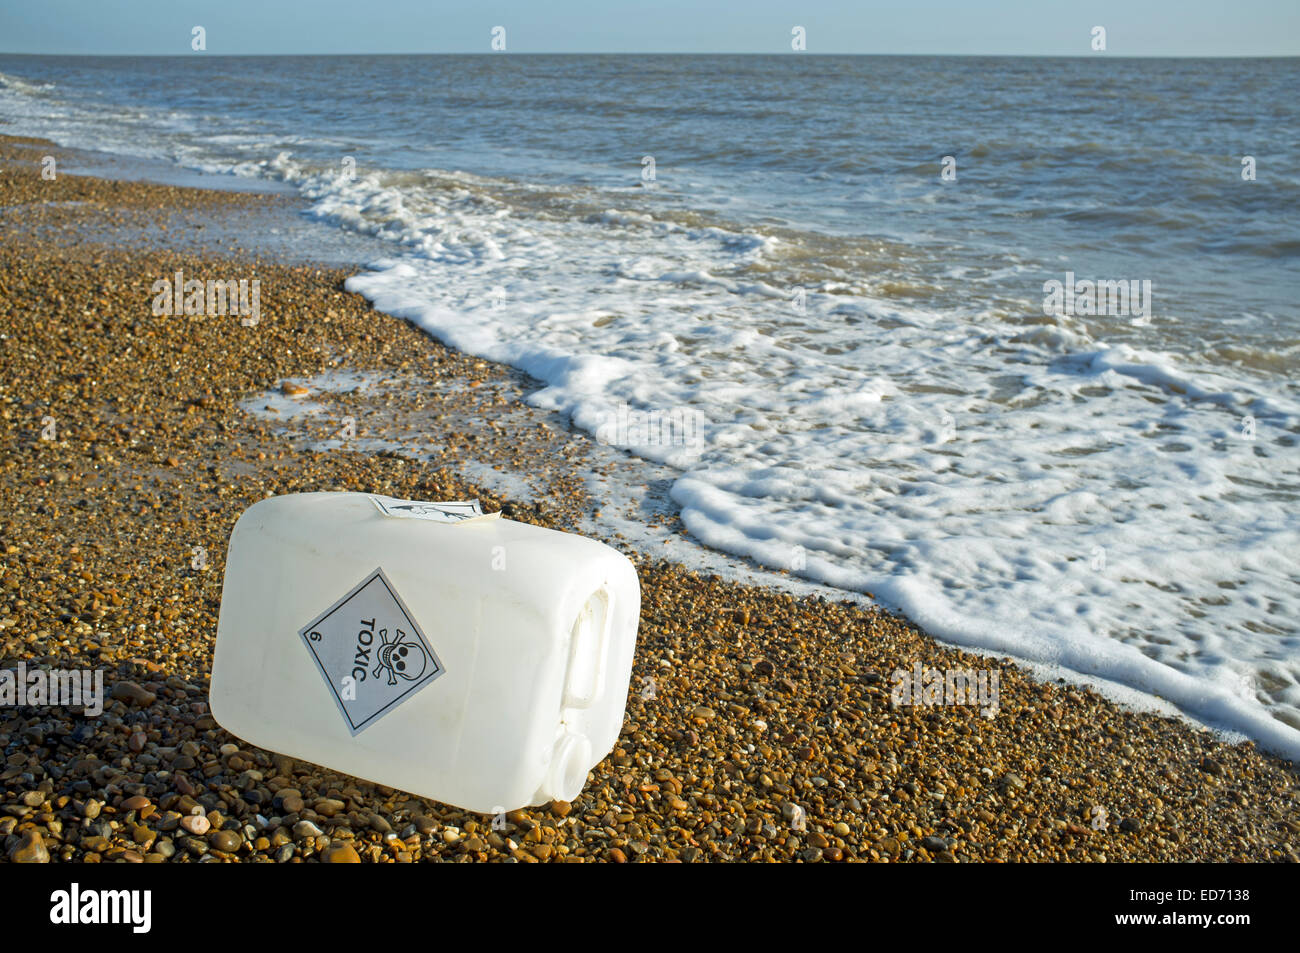 Plastic container with Toxic sticker, washed up on the North Sea beach, Bawdsey Ferry, Suffolk, UK. - Stock Image